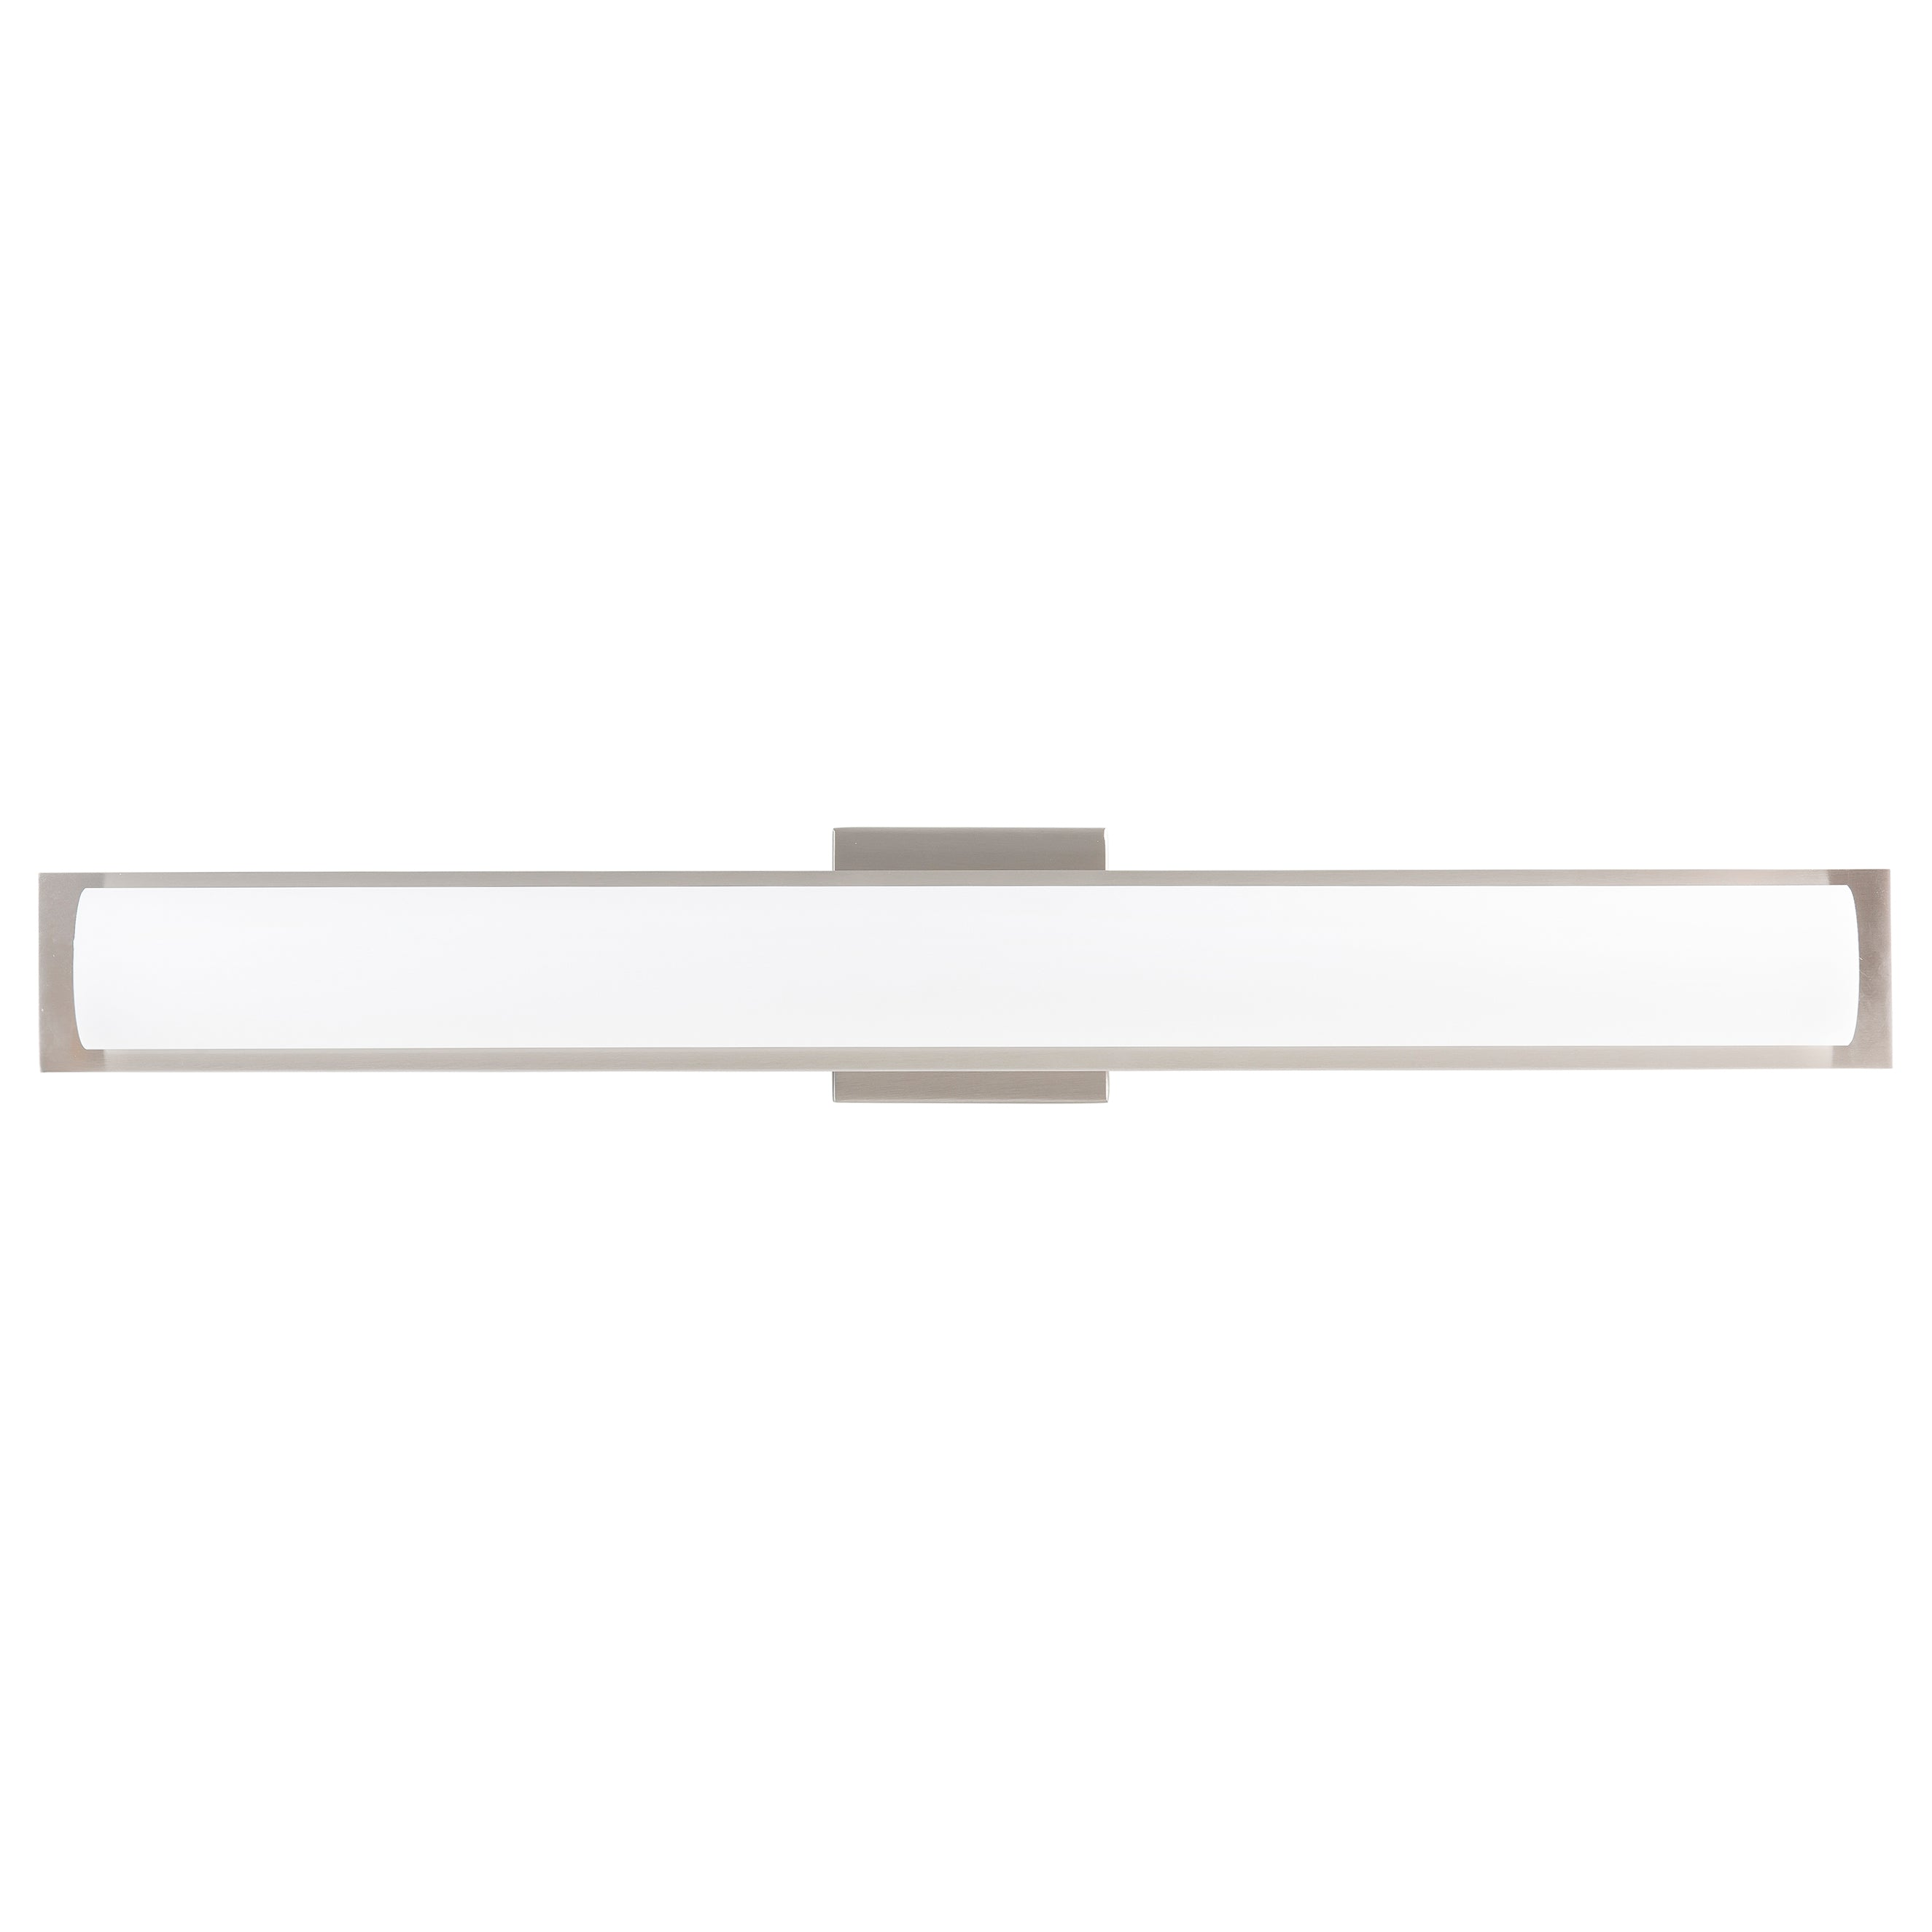 Portico 30 inch led bathroom vanity light integrated led light strip